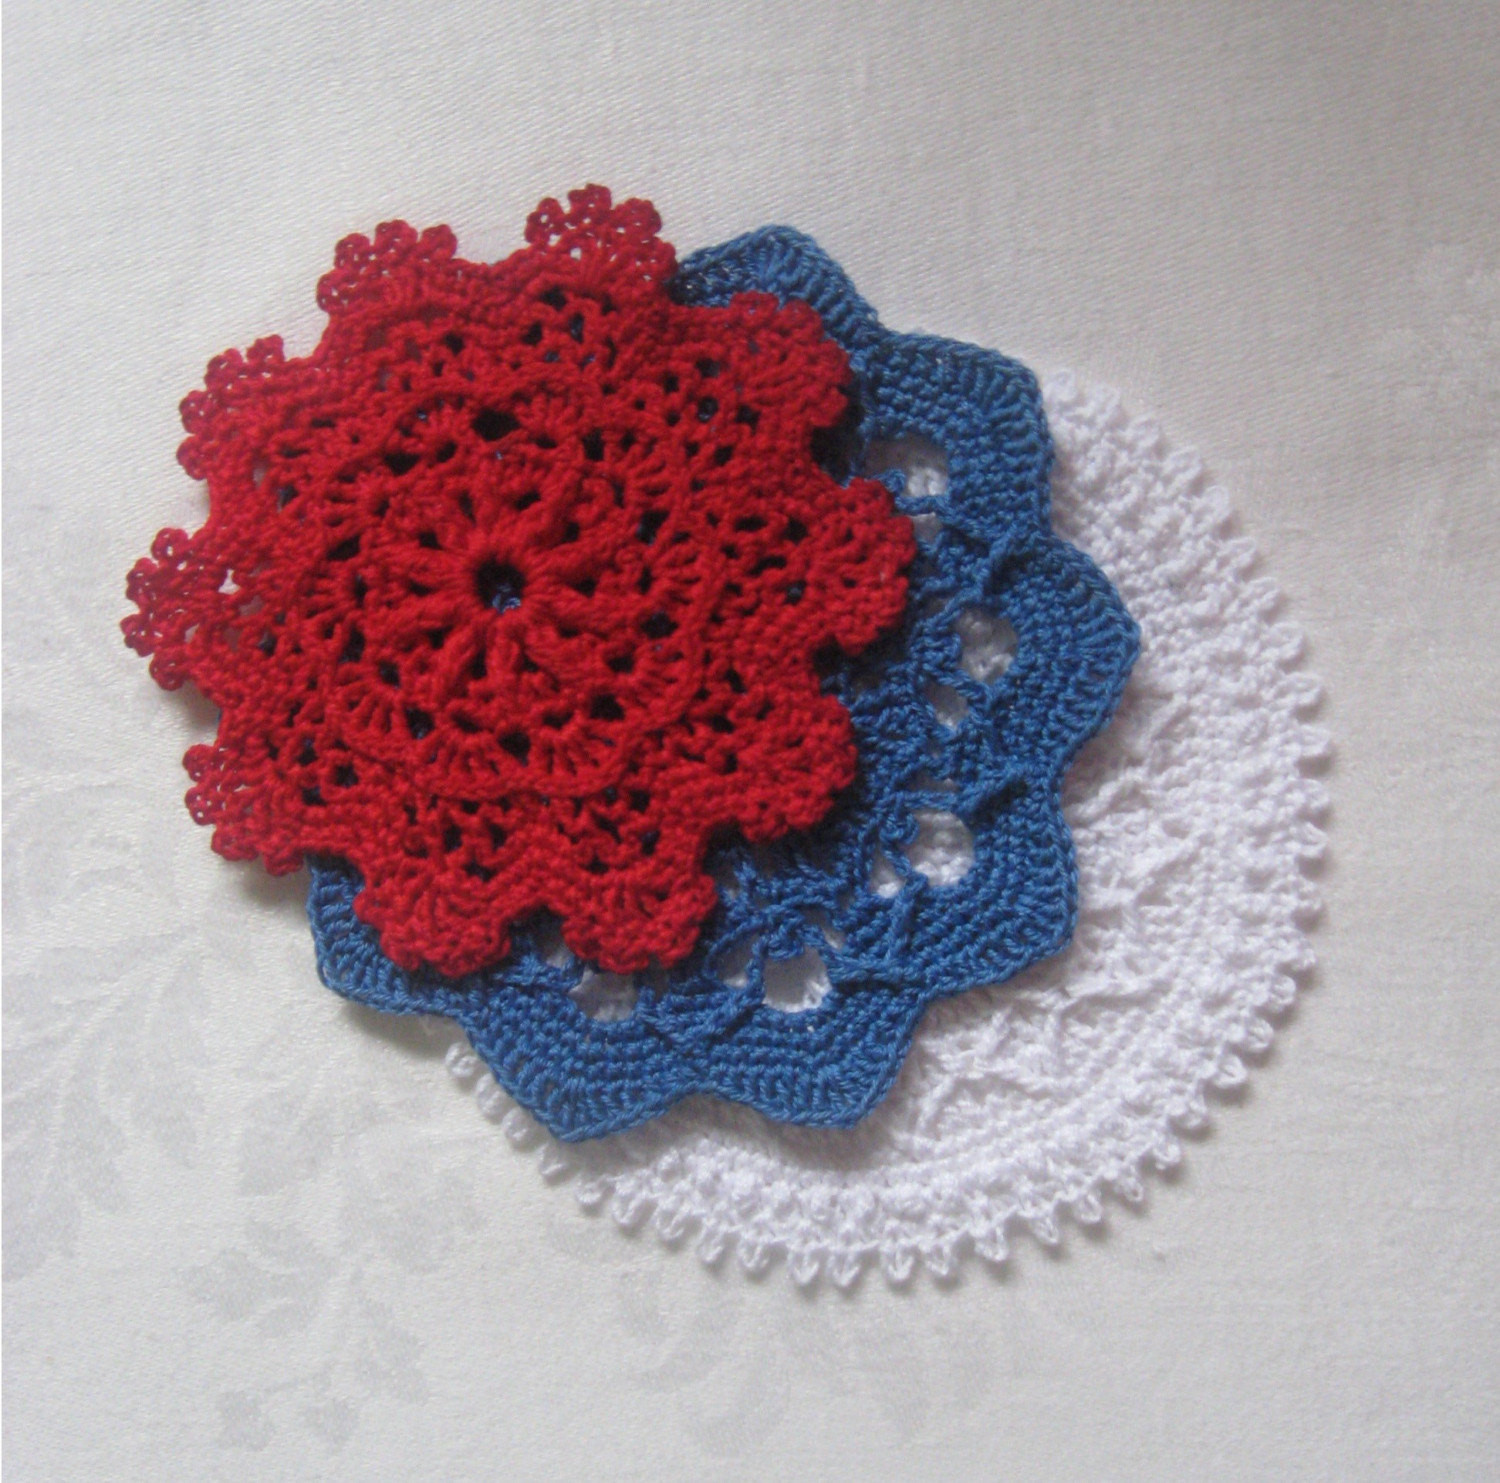 Red Doilies Inspirational Red White and Blue Doilies Of Luxury 43 Images Red Doilies